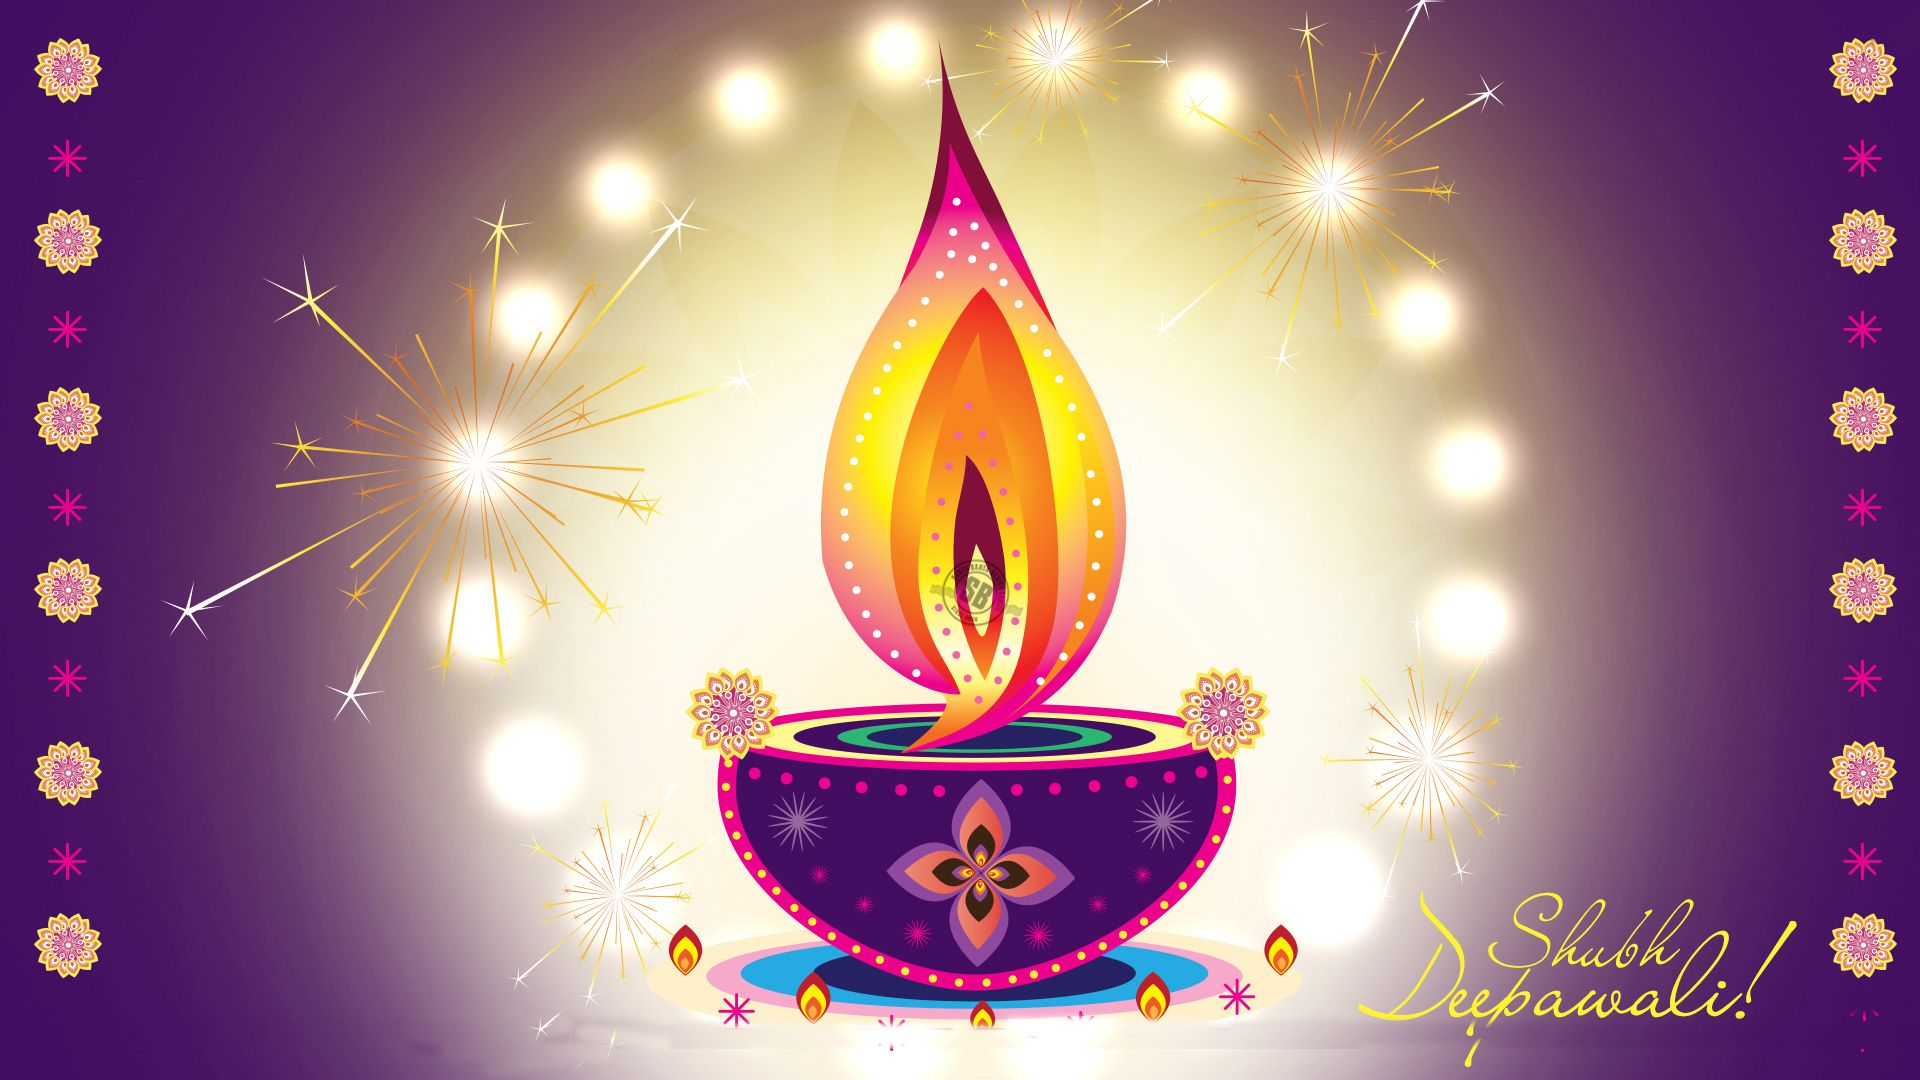 Wish you all a Very Happy Diwali & Prosperous New Year